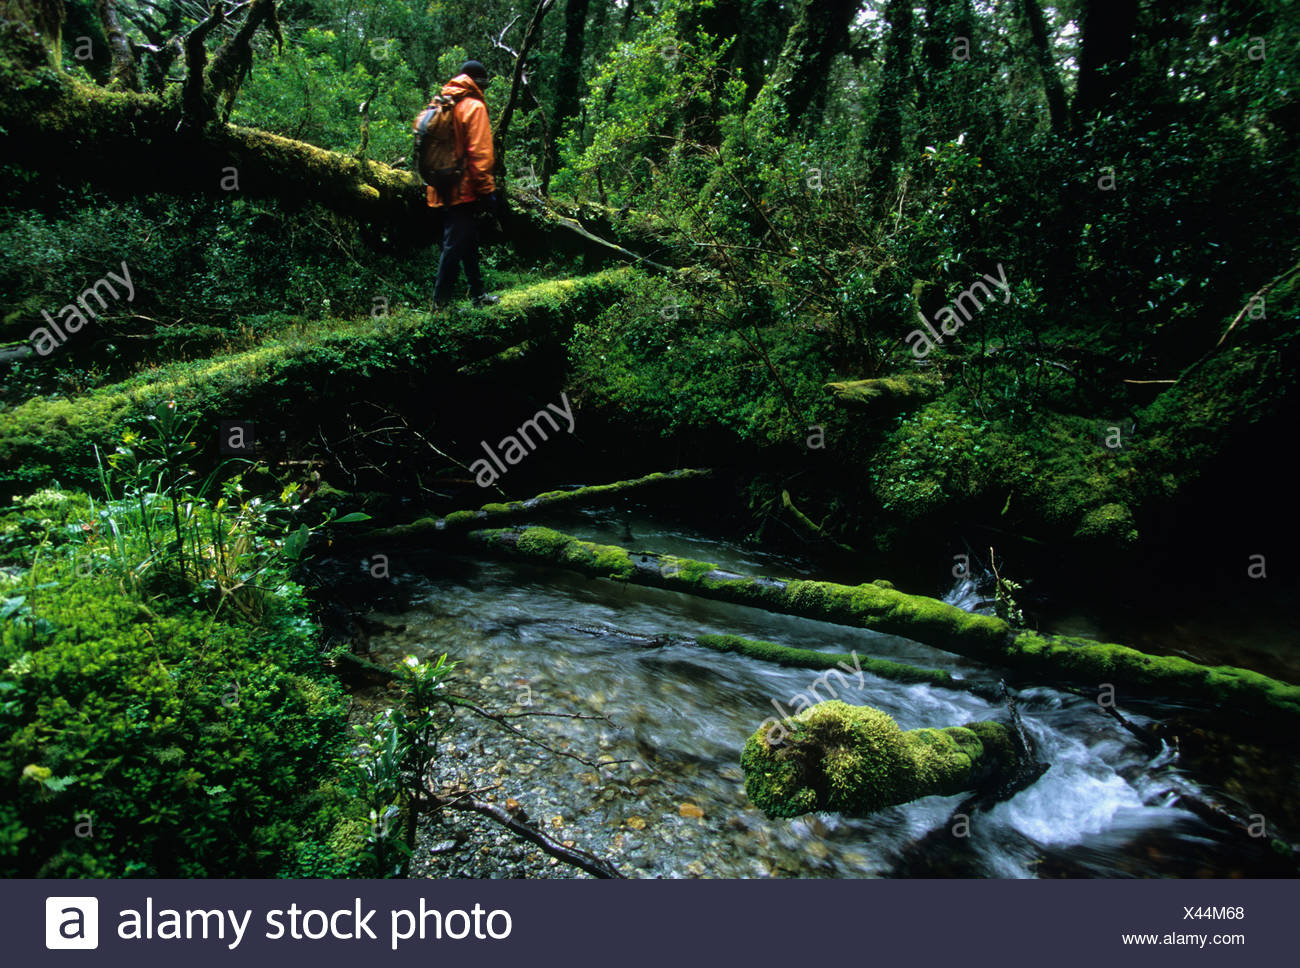 A man hikes across moss-covered log over a stream in Queulat National Park Chile - Stock Image